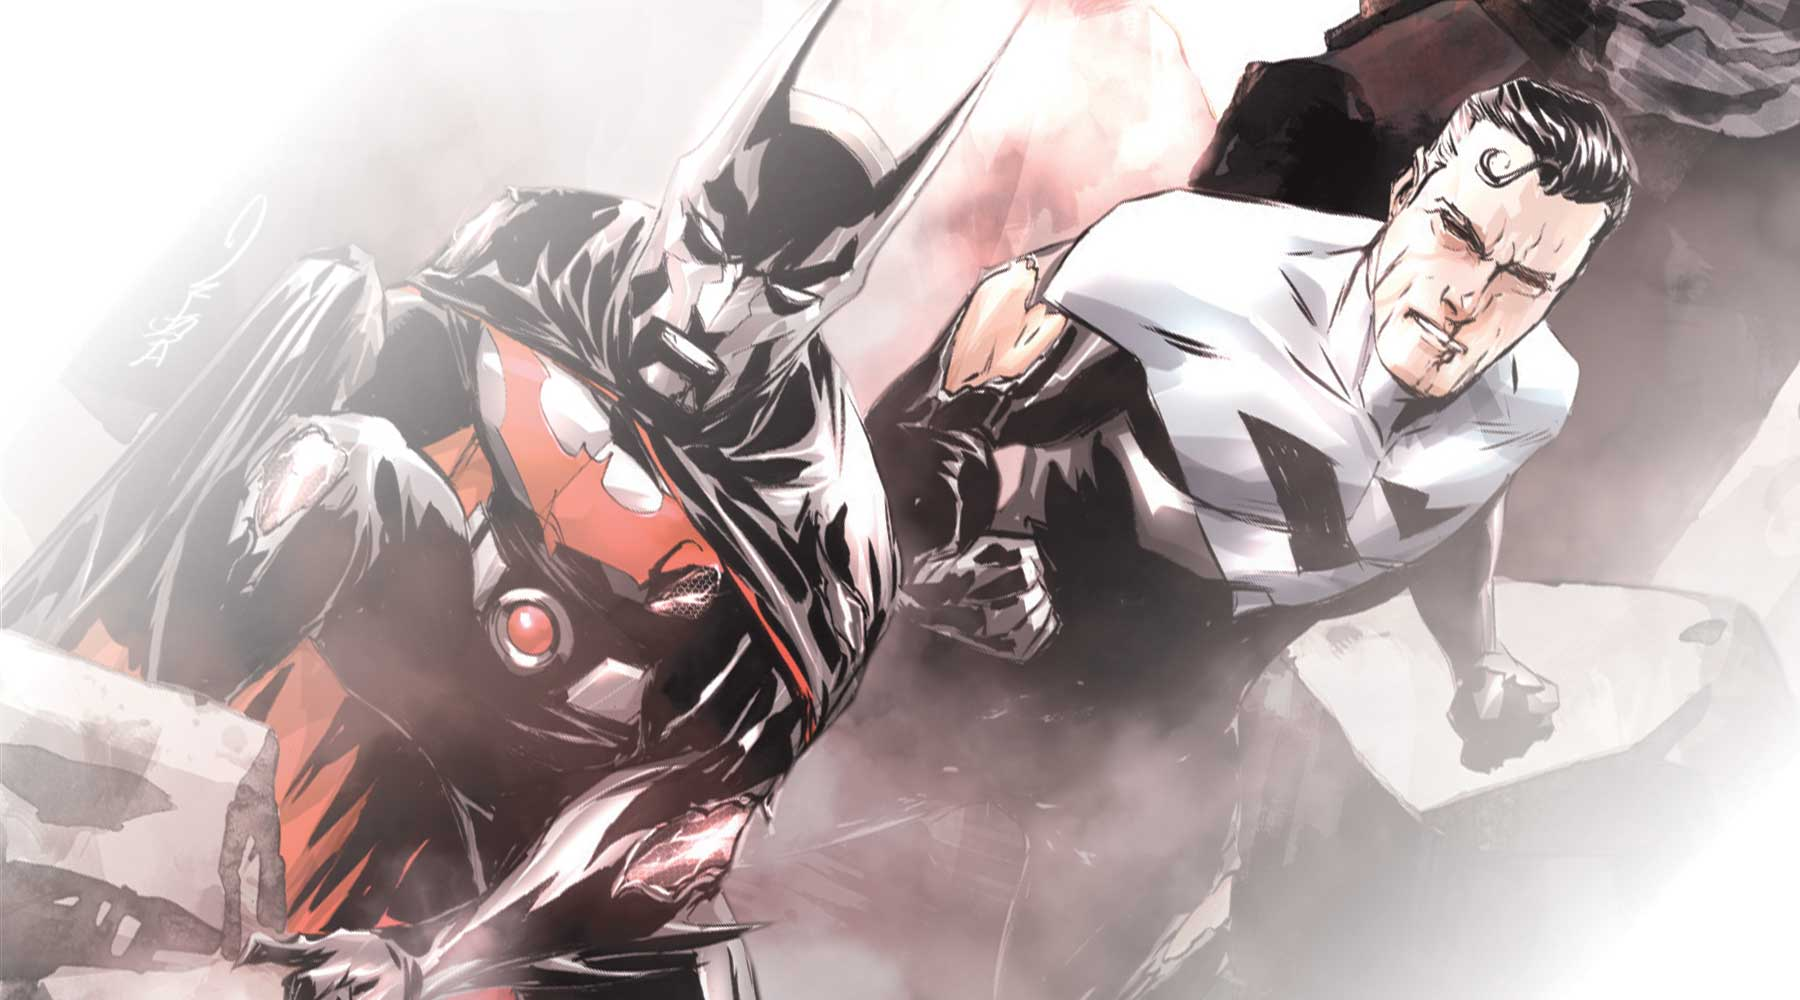 batmanbeyond4